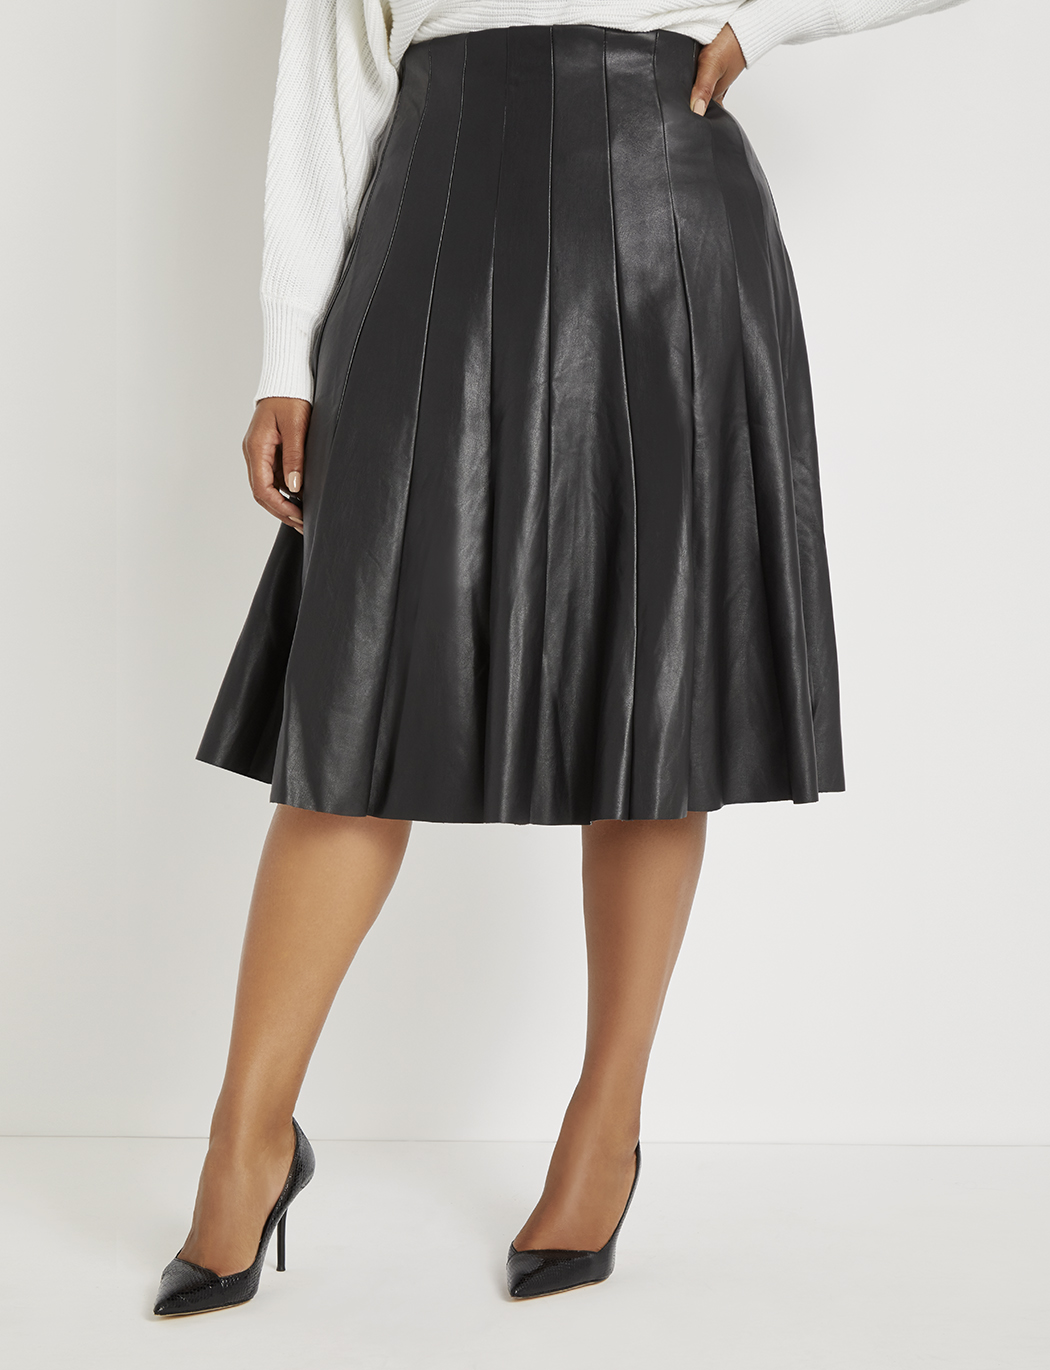 bd90964217f Faux Leather Pleated Skirt | Women's Plus Size Skirts | ELOQUII